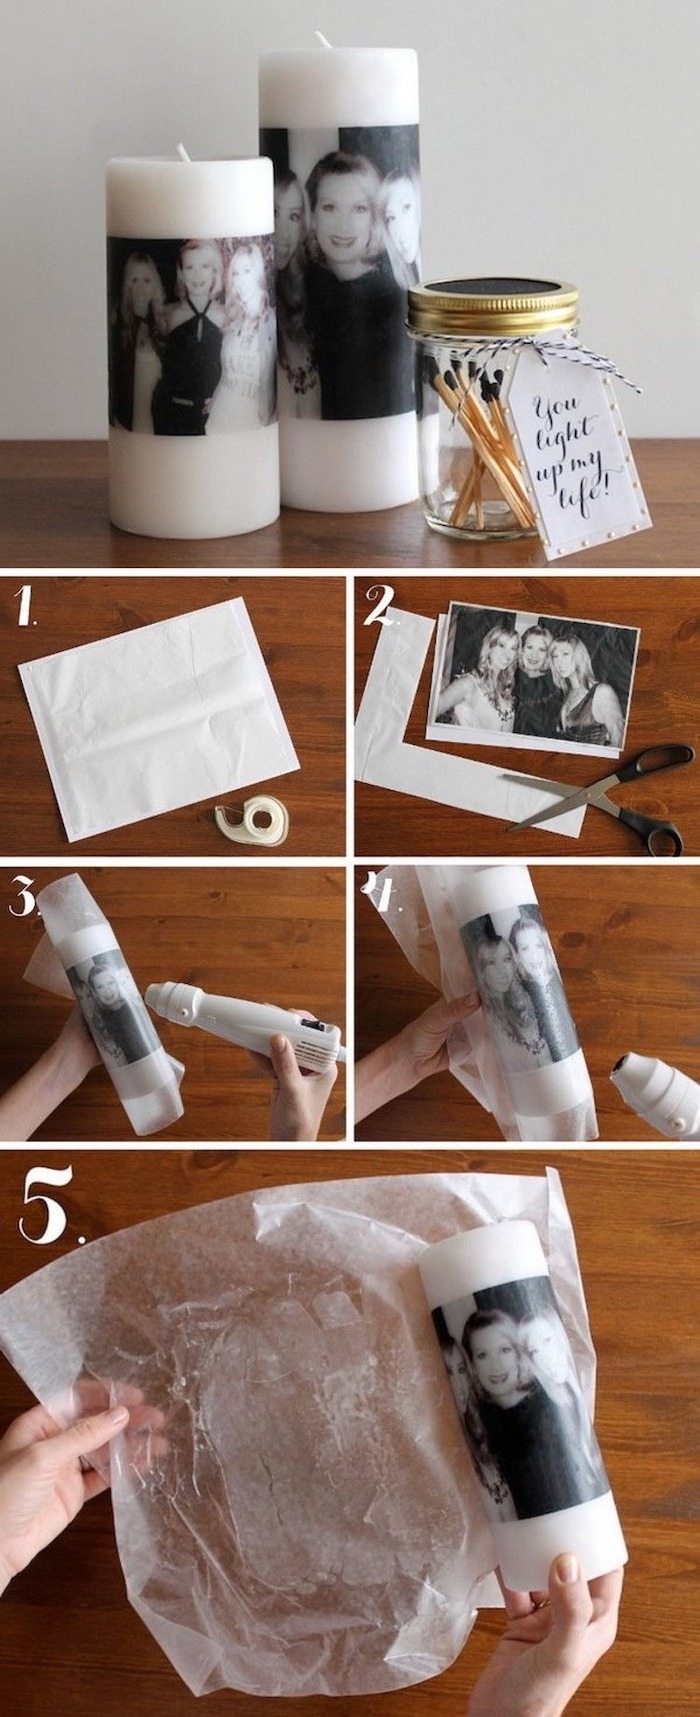 photo collage with step by step diy tutorial, how to print photos on candles, personalised gifts for mom